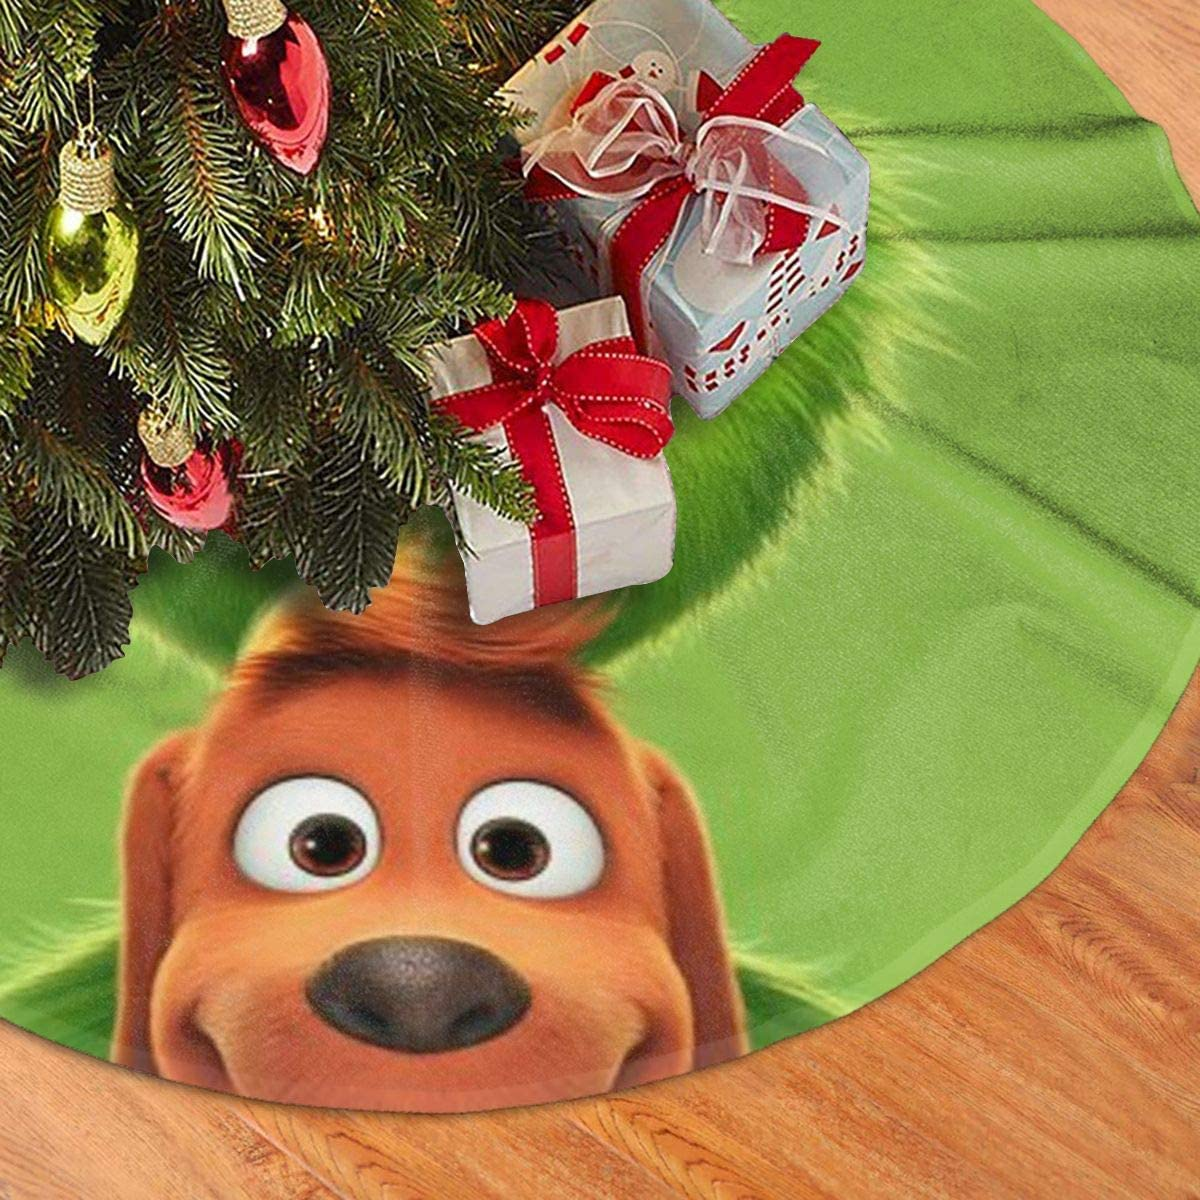 Muelmary The Grinch Stole Christmas Christmas Tree Skirt For Christmas Decorations For Xmas Party And Holiday Decorations Seasonal Décor Home Kitchen